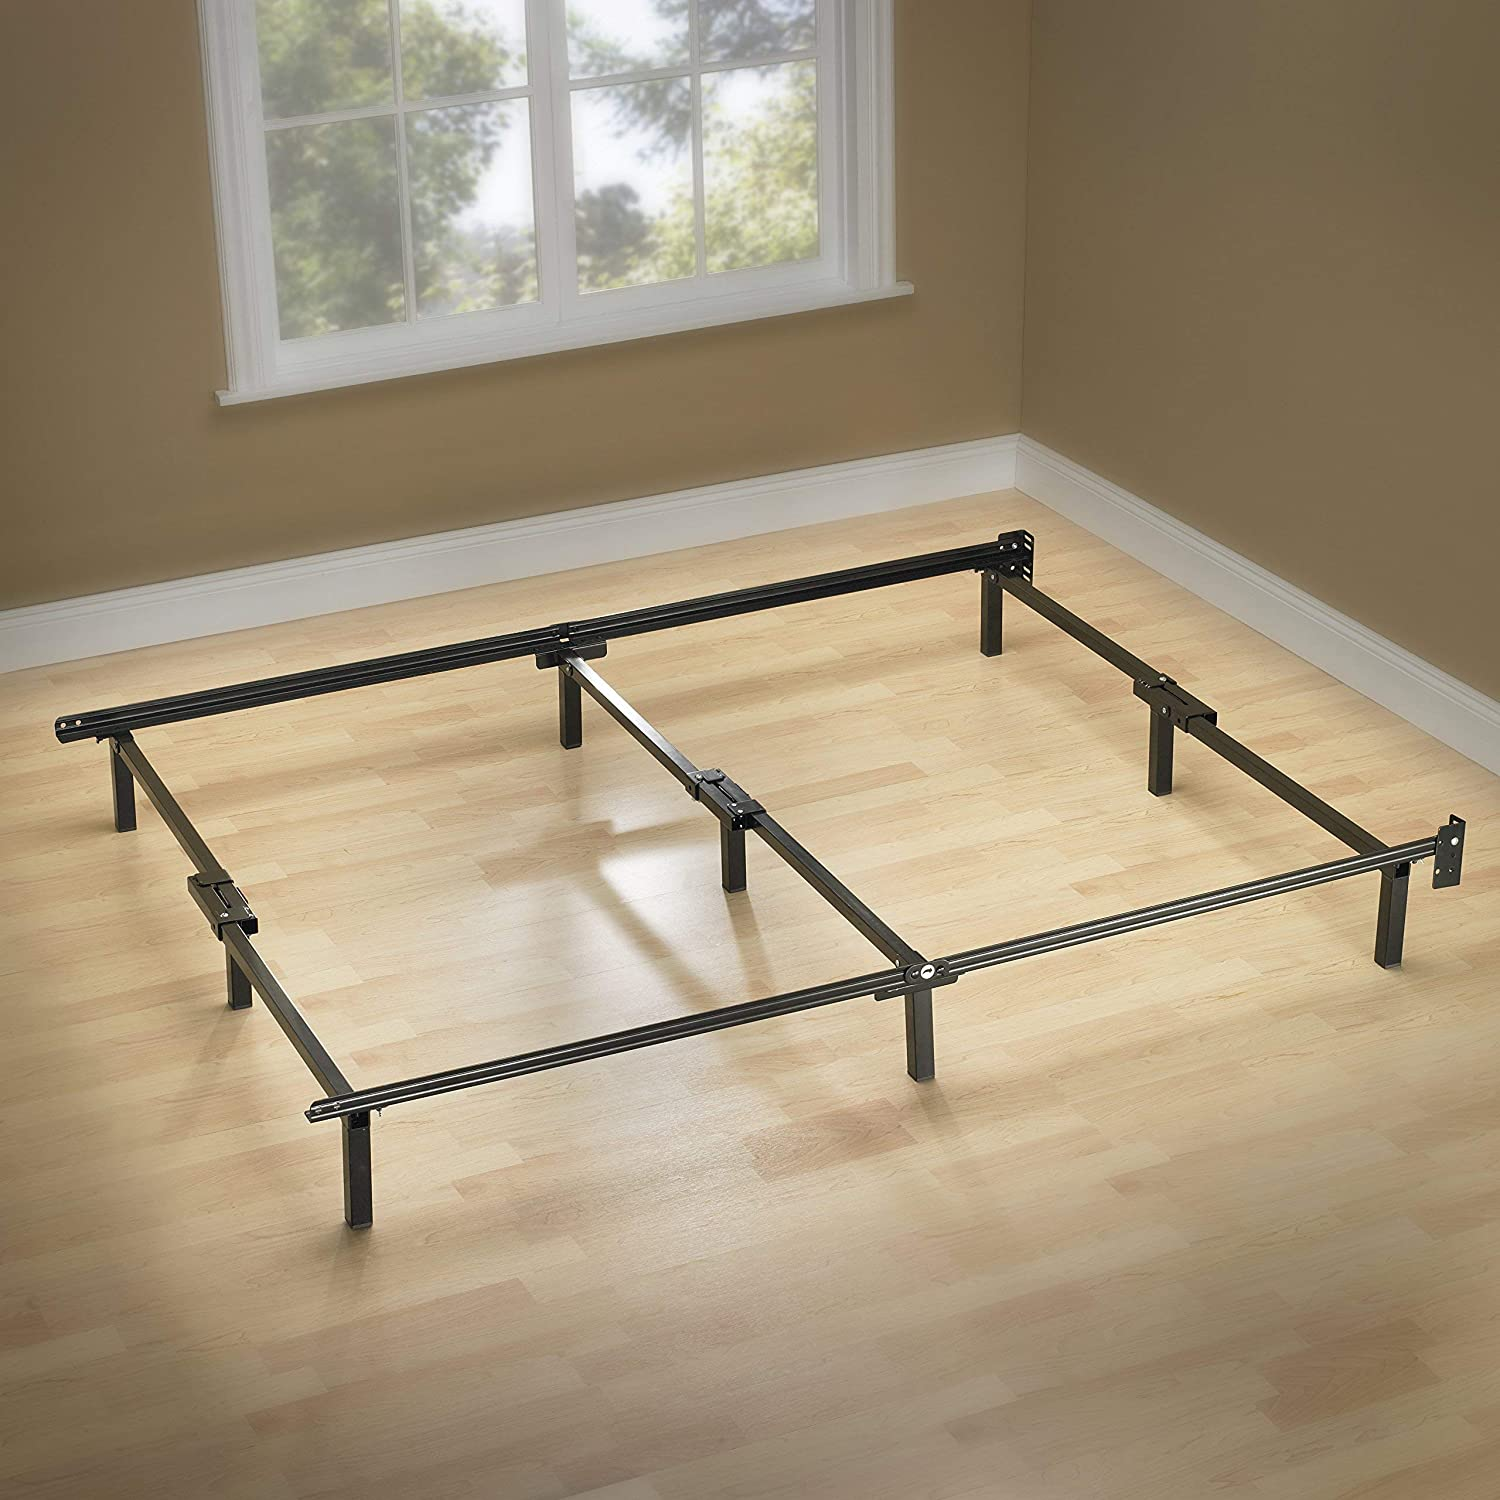 Sleep Revolution Compack Bed Frame with 9-Leg Support System – King Renewed